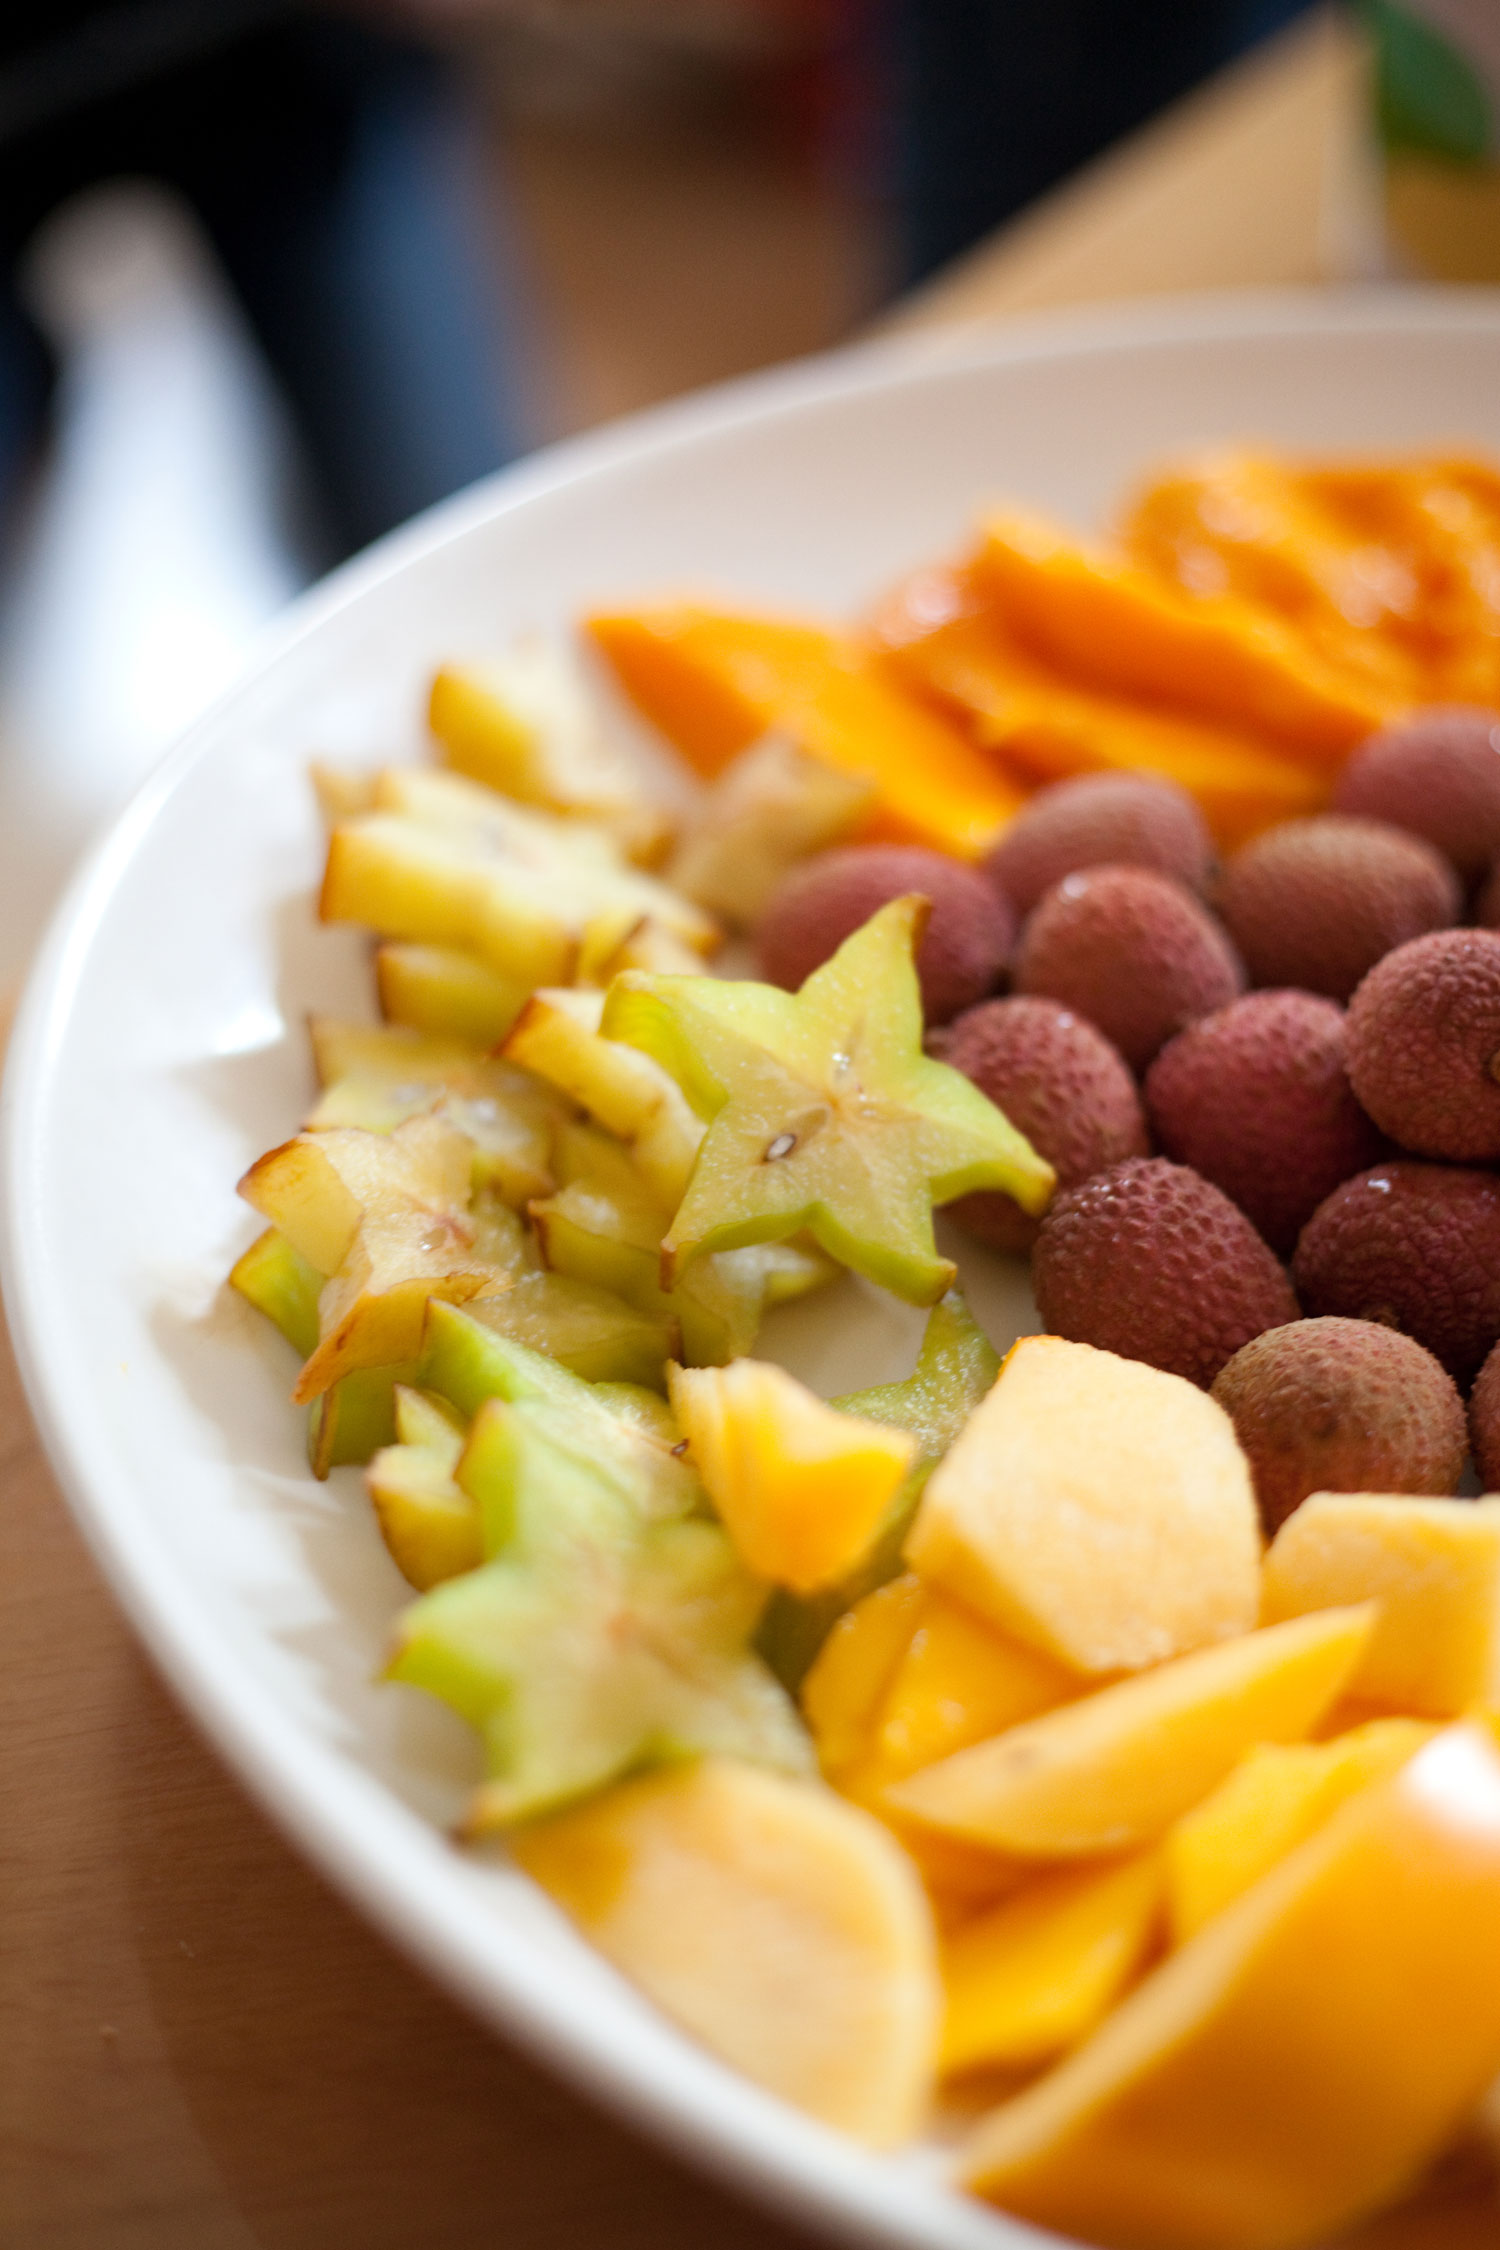 Litchis, Mangoes, and Starfruit